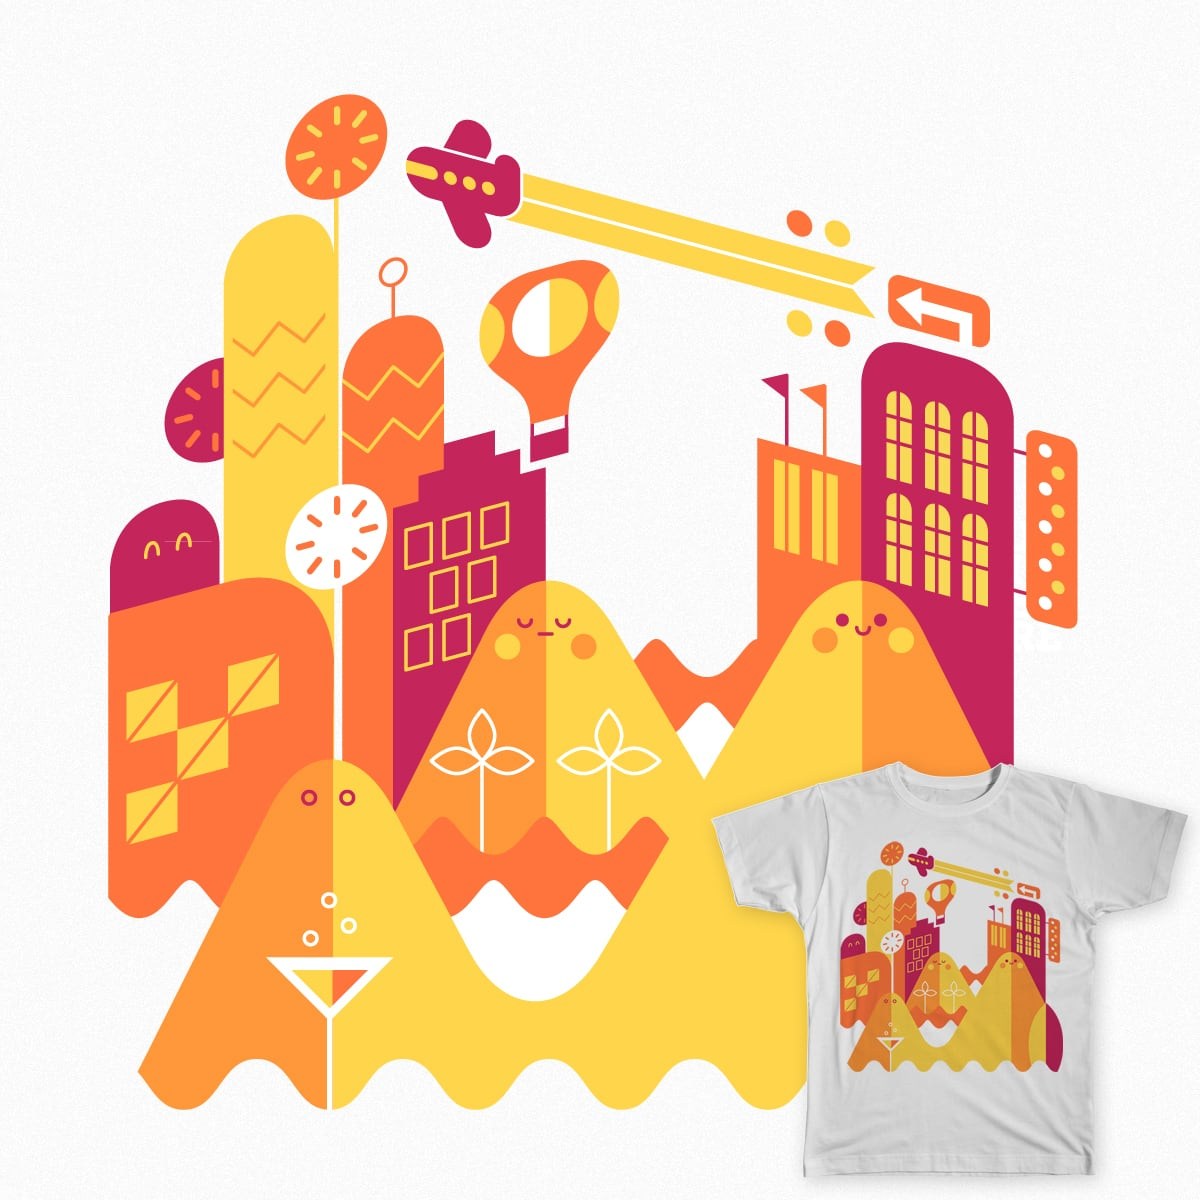 Sense of summer by momoandsprits on Threadless